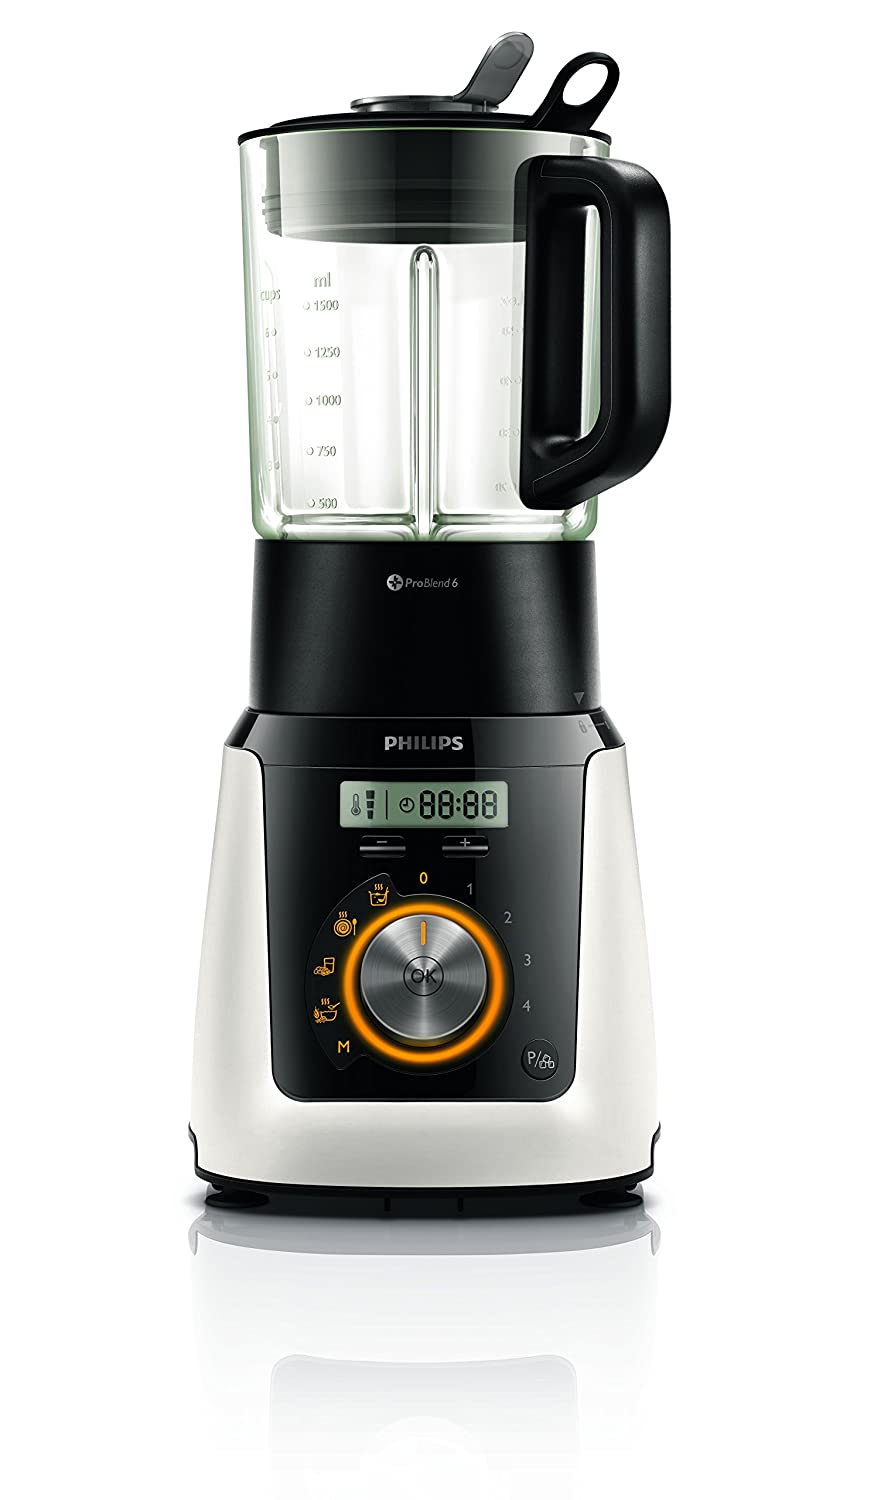 Philips Avance Collection HR2098 Tabletop blender 2L 990W Color blanco - Licuadora (Acero inoxidable, Vidrio, Acero inoxidable, Polipropileno, ...